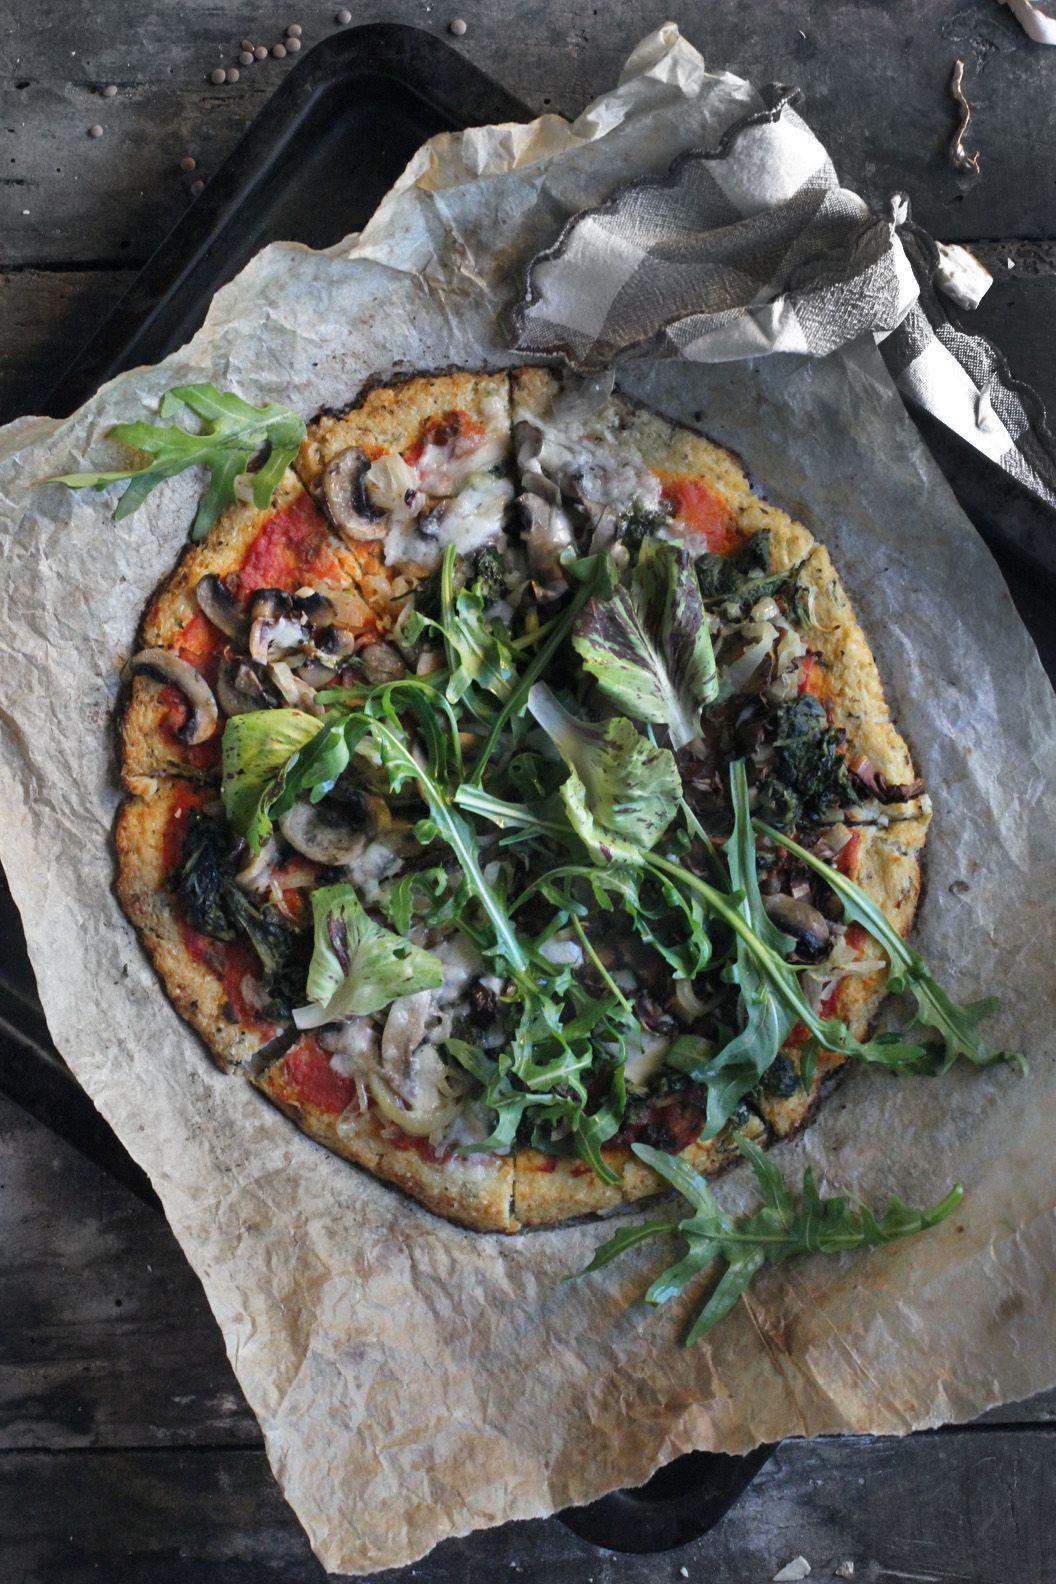 Cauliflower crust pizza and what about tomato sauce